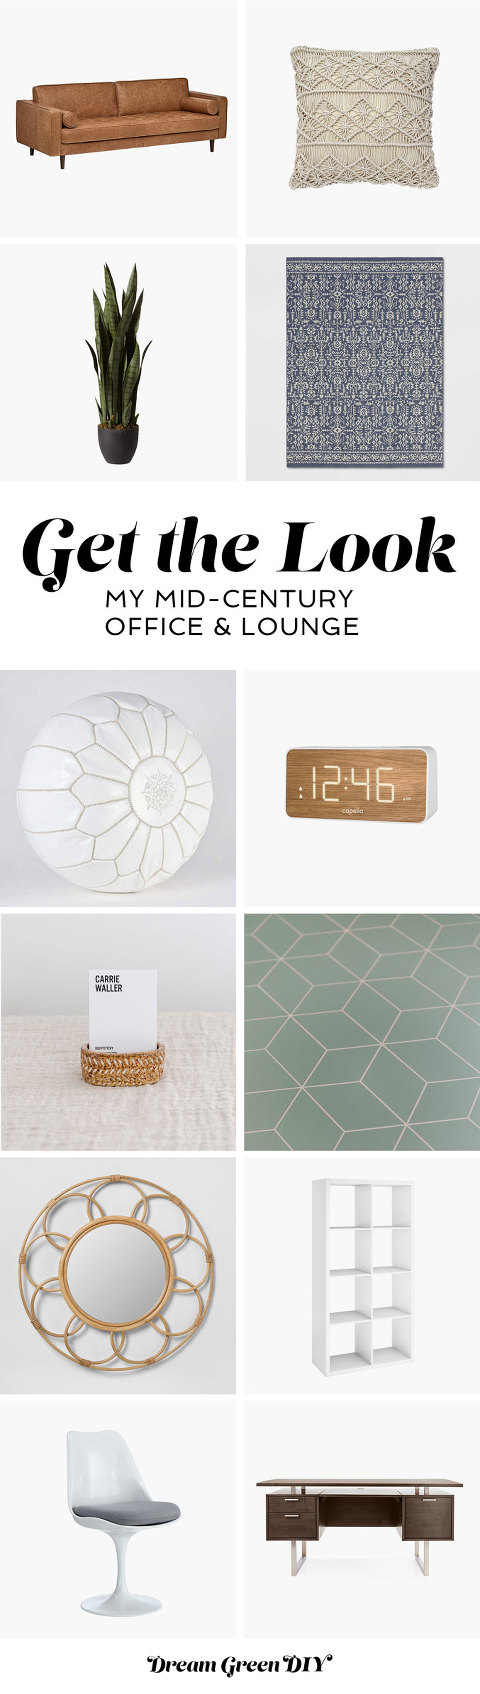 Get The Look Of My Mid-Century Office